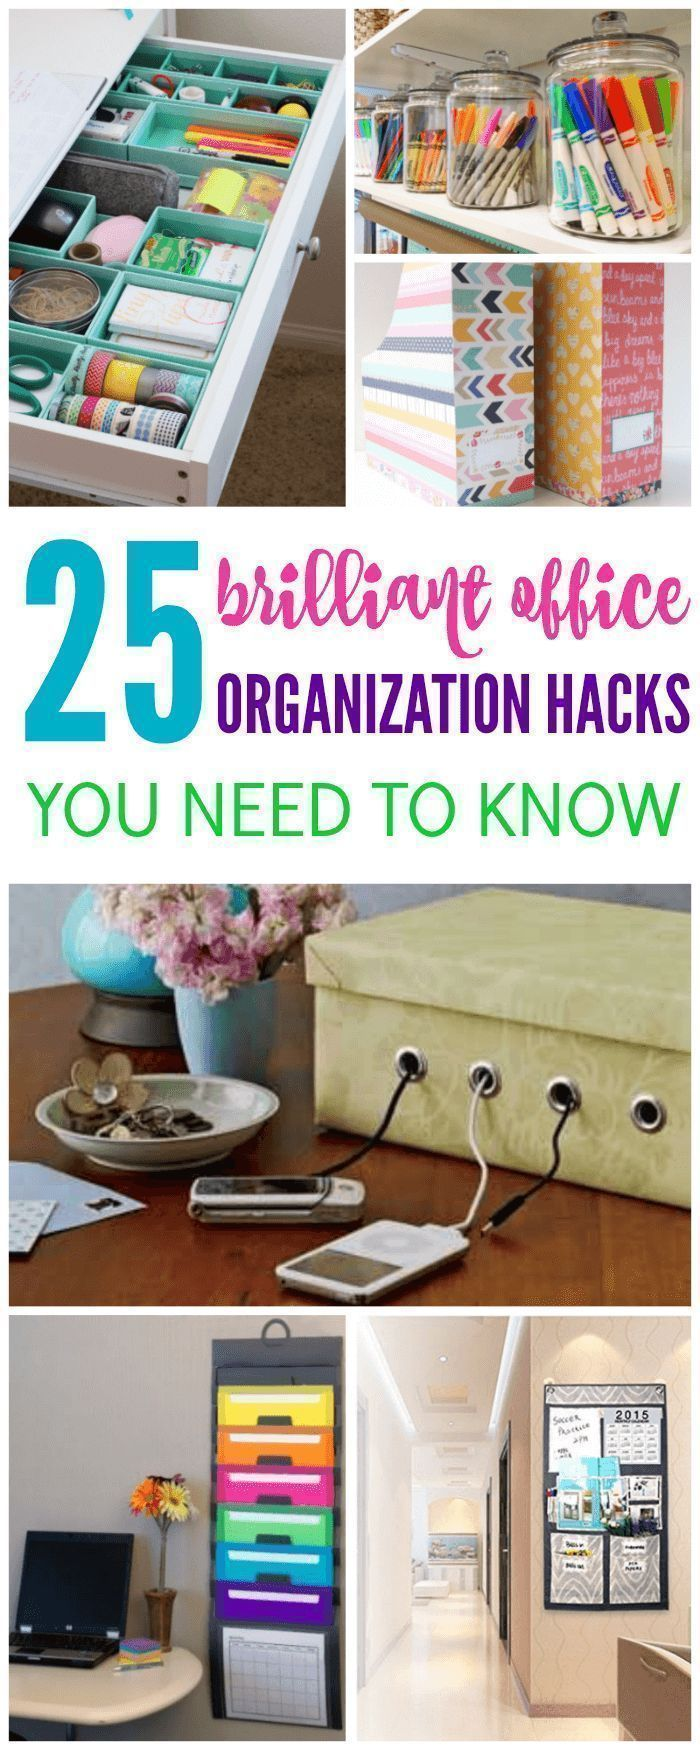 If You Re Looking To Get Your Office Organized Then Check Out These Great Hacks Right Now Passi Organisation Hacks Organizing Hacks Bastelzimmer Organisieren